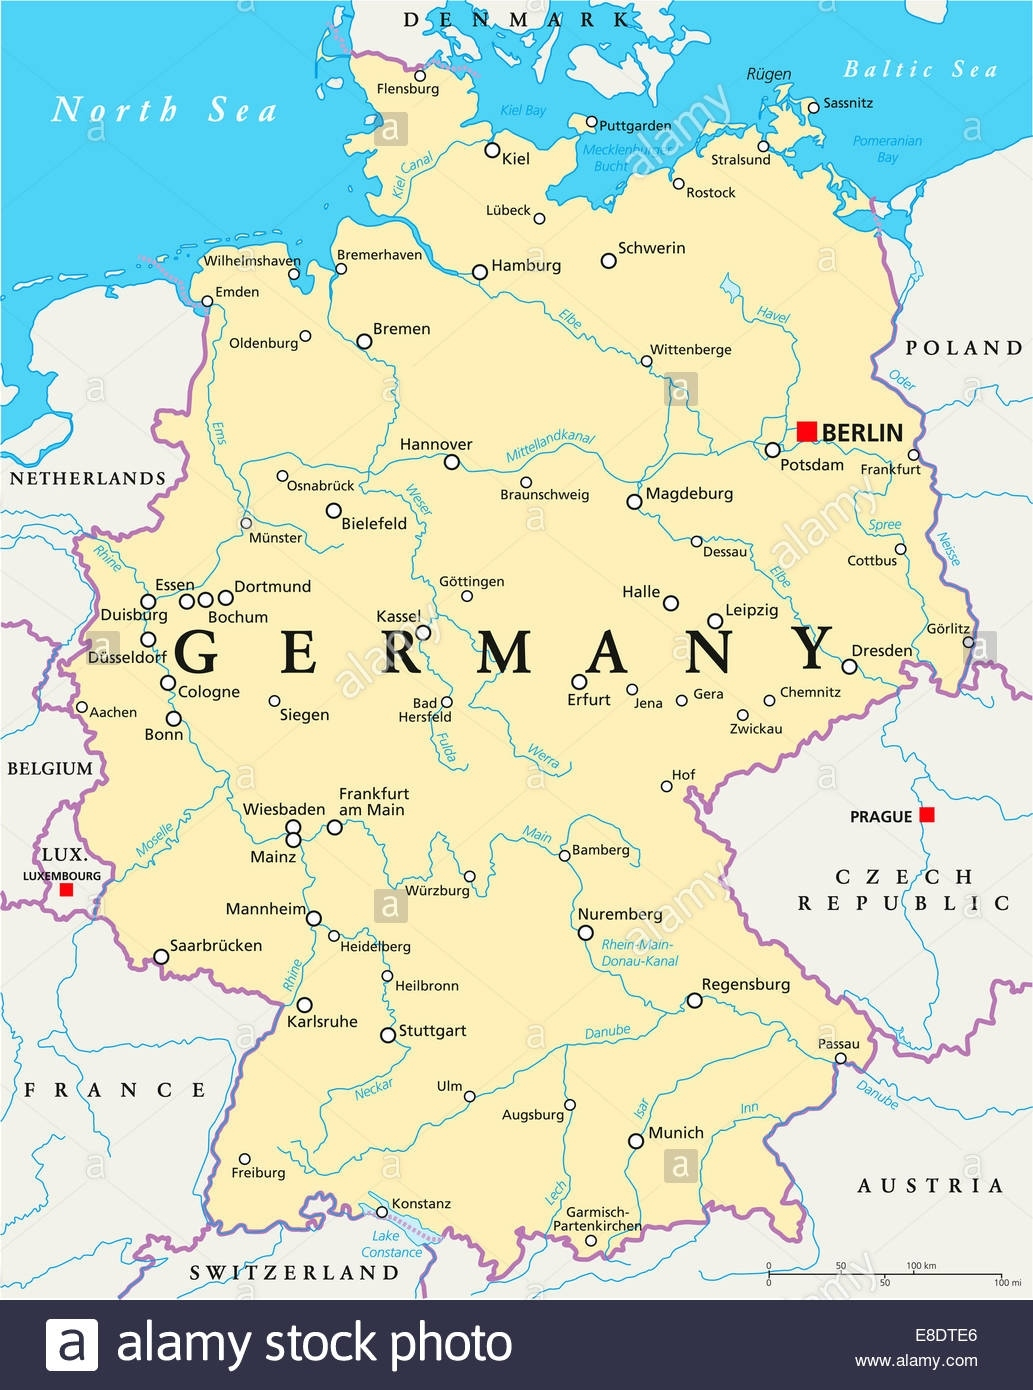 Germany Political Map With Capital Berlin, National Borders, Most throughout Capital Of Germany Map